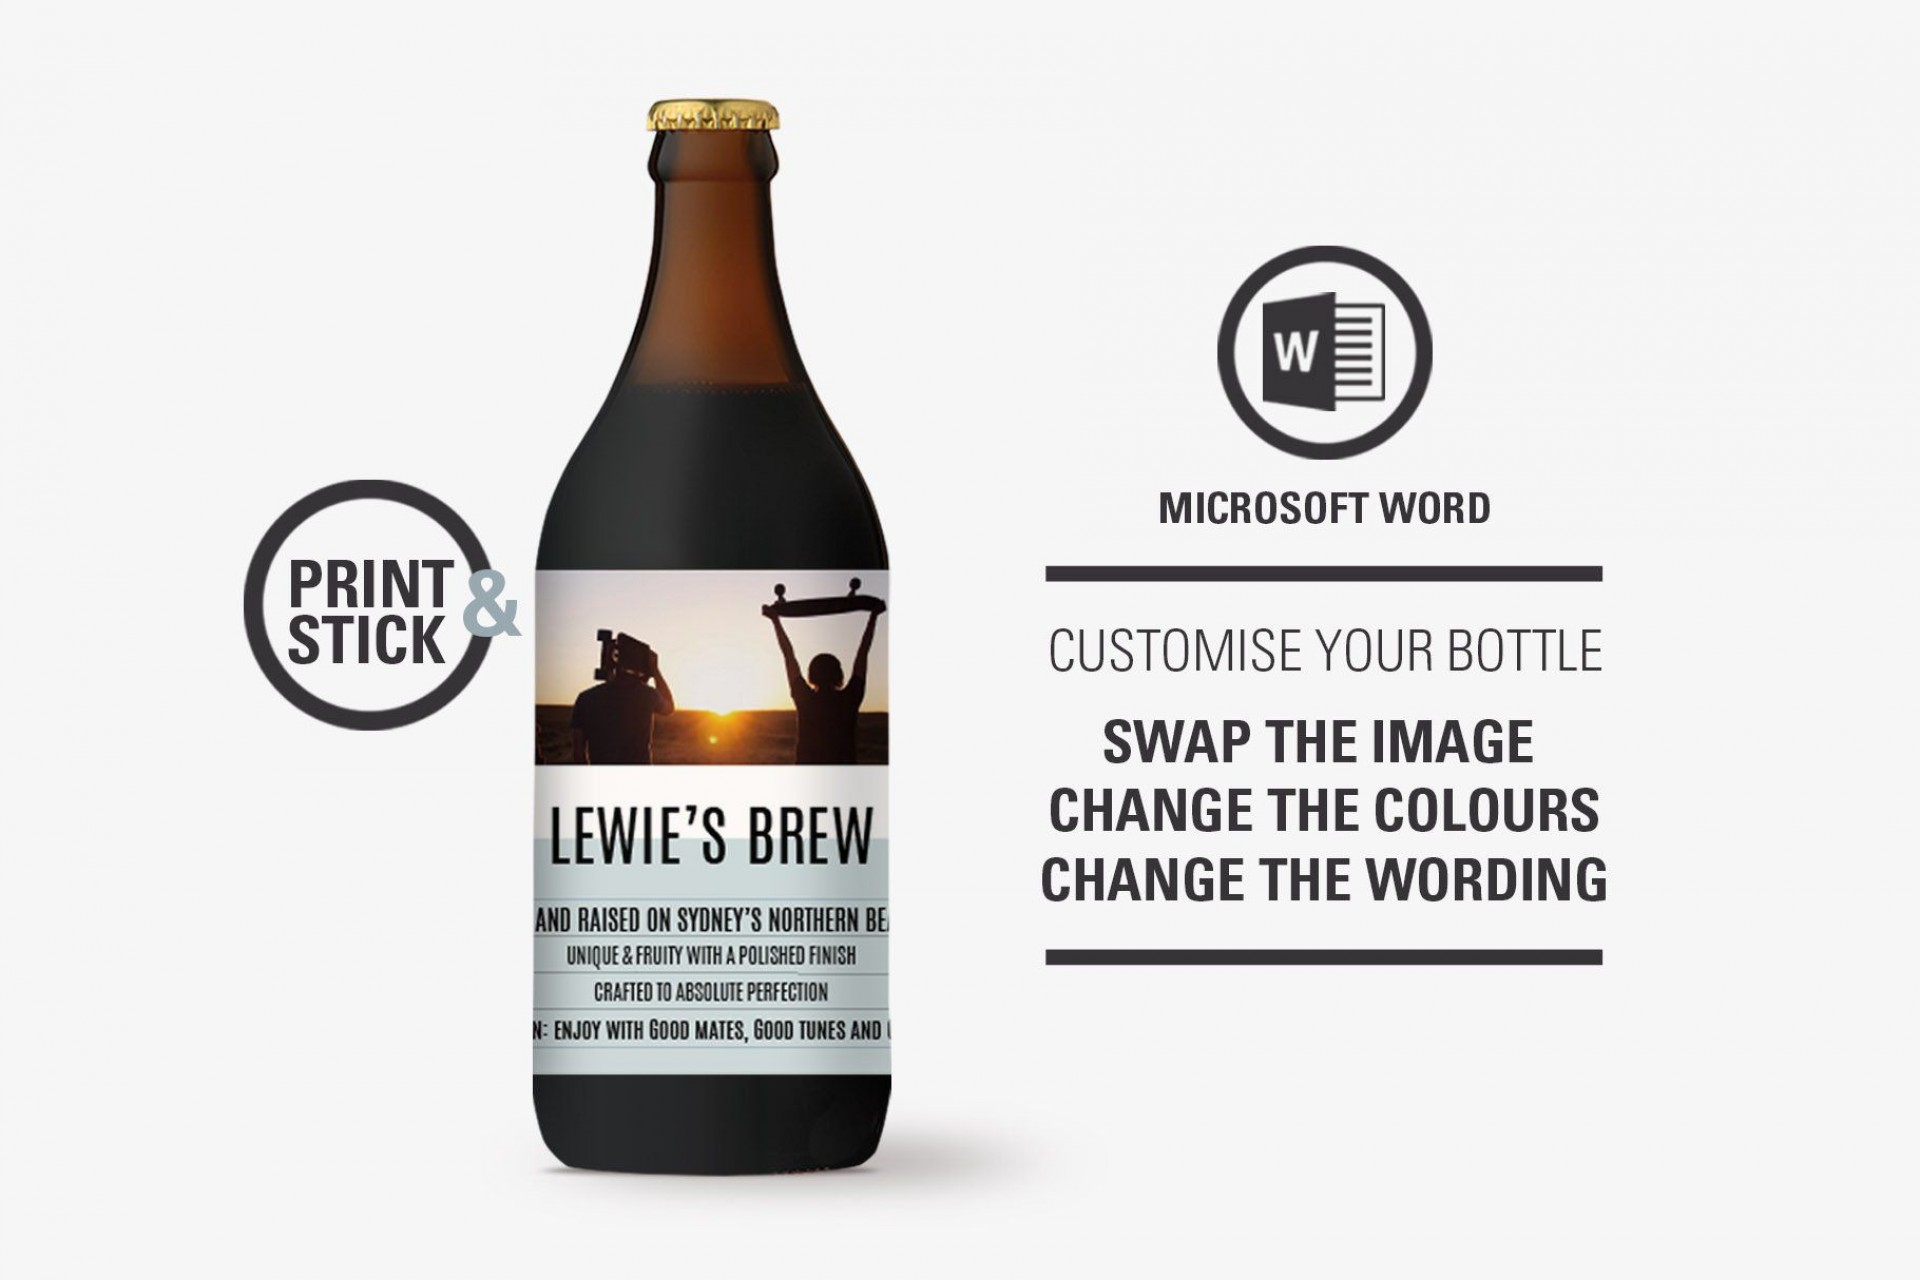 005 Stunning Microsoft Word Beer Label Template Sample  Bottle1920